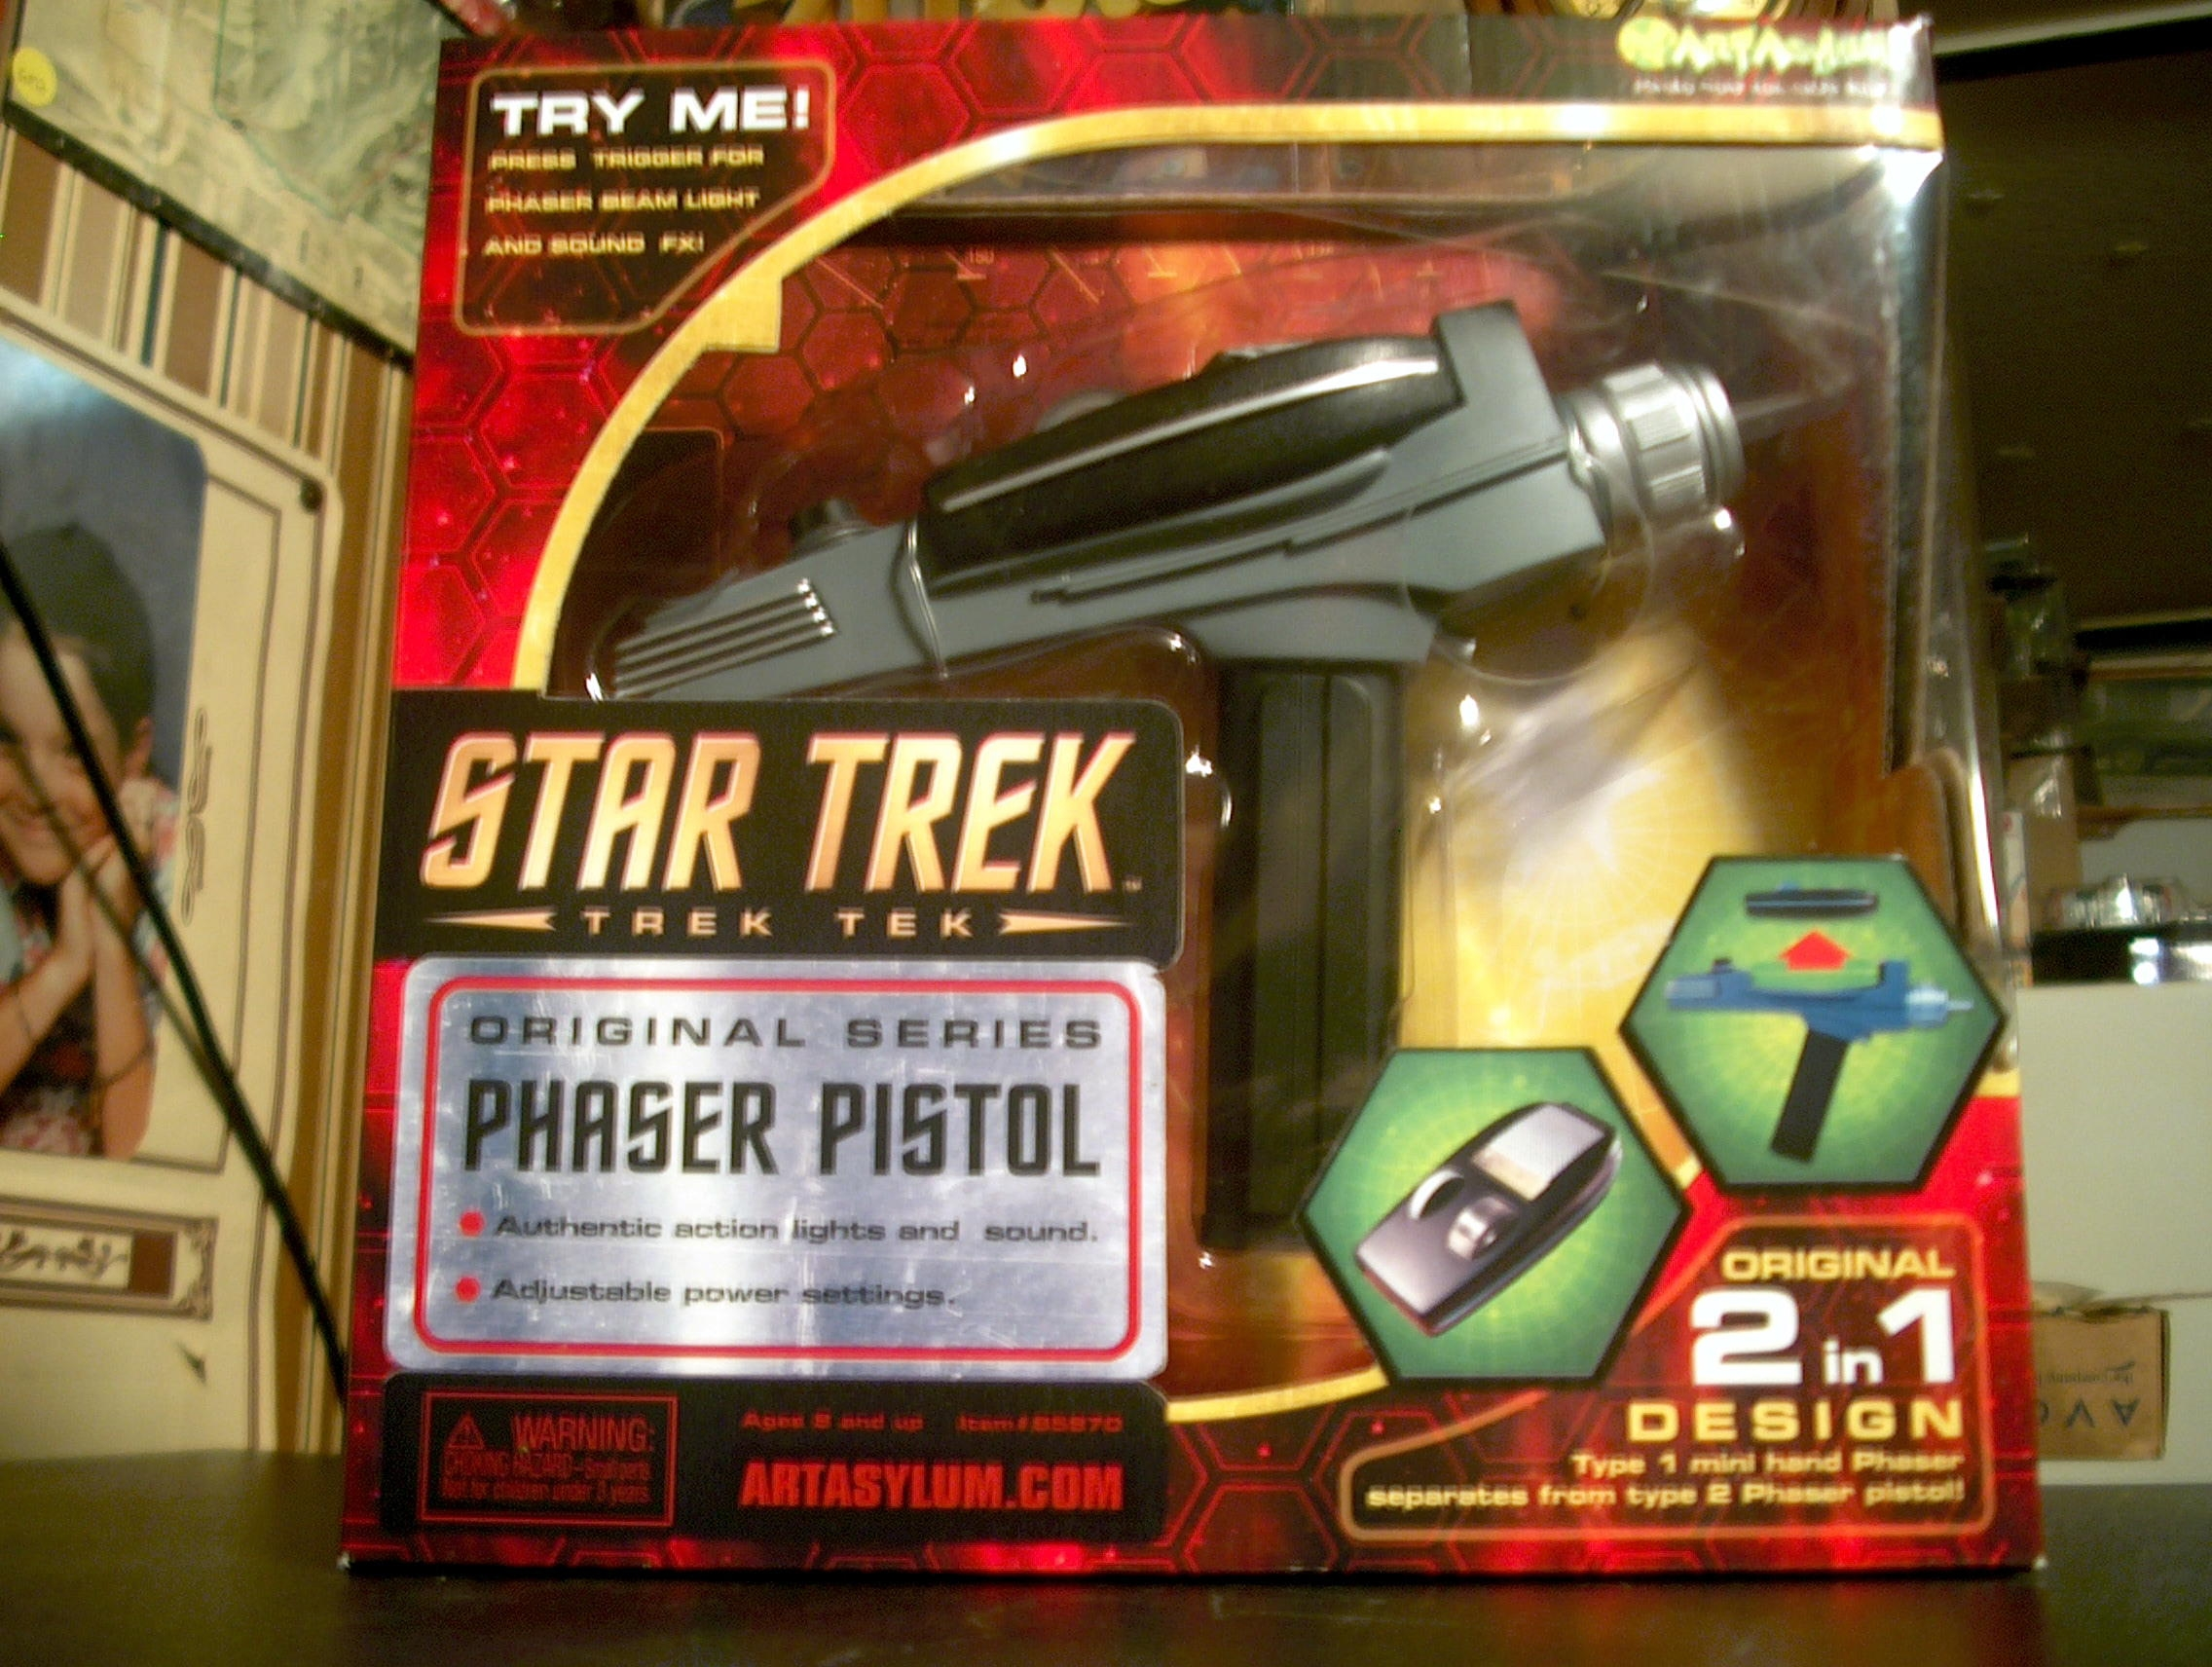 Phaser Pistol-original series